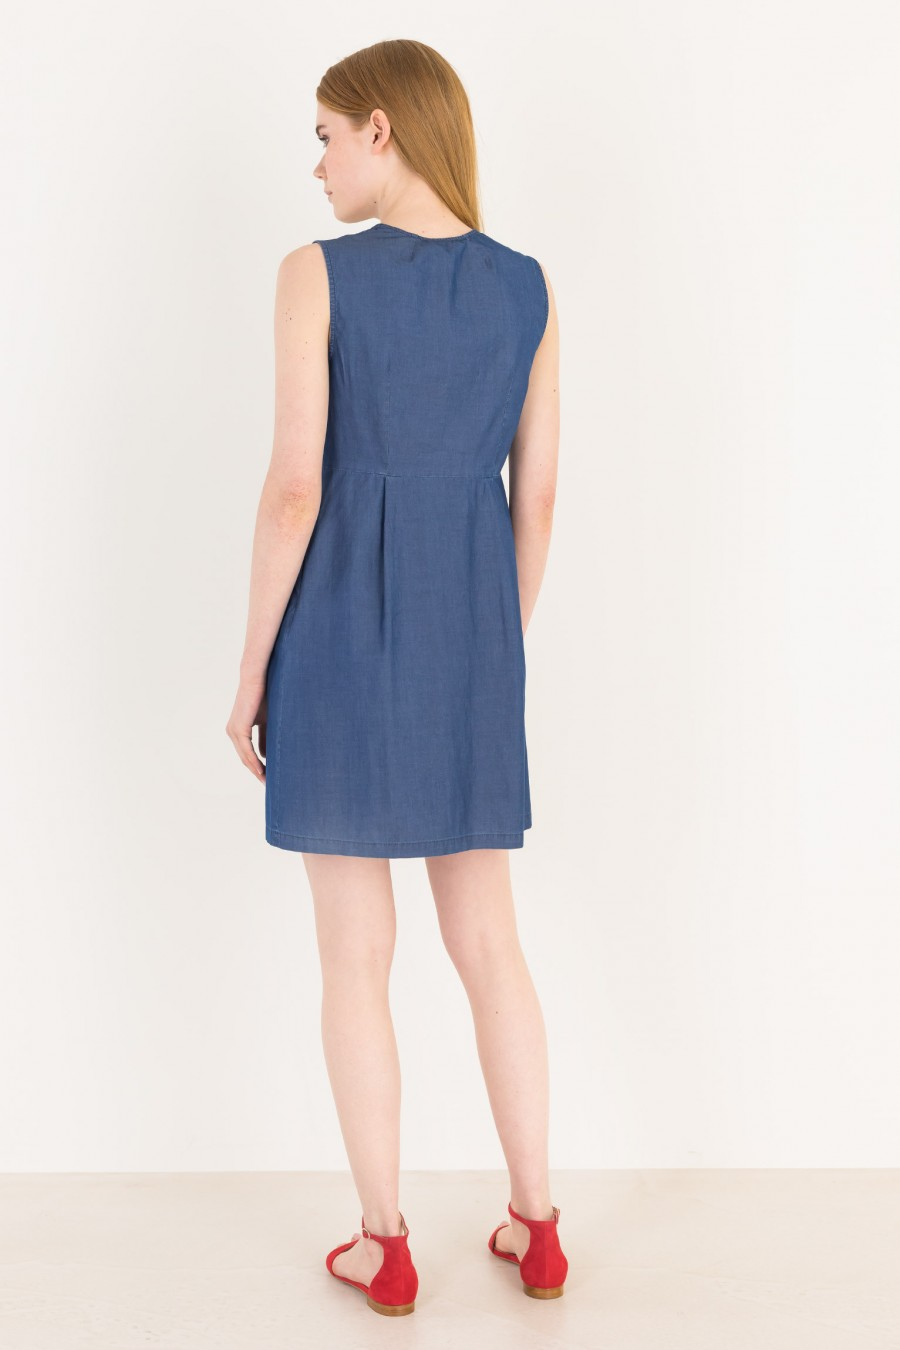 Summer dress with knot